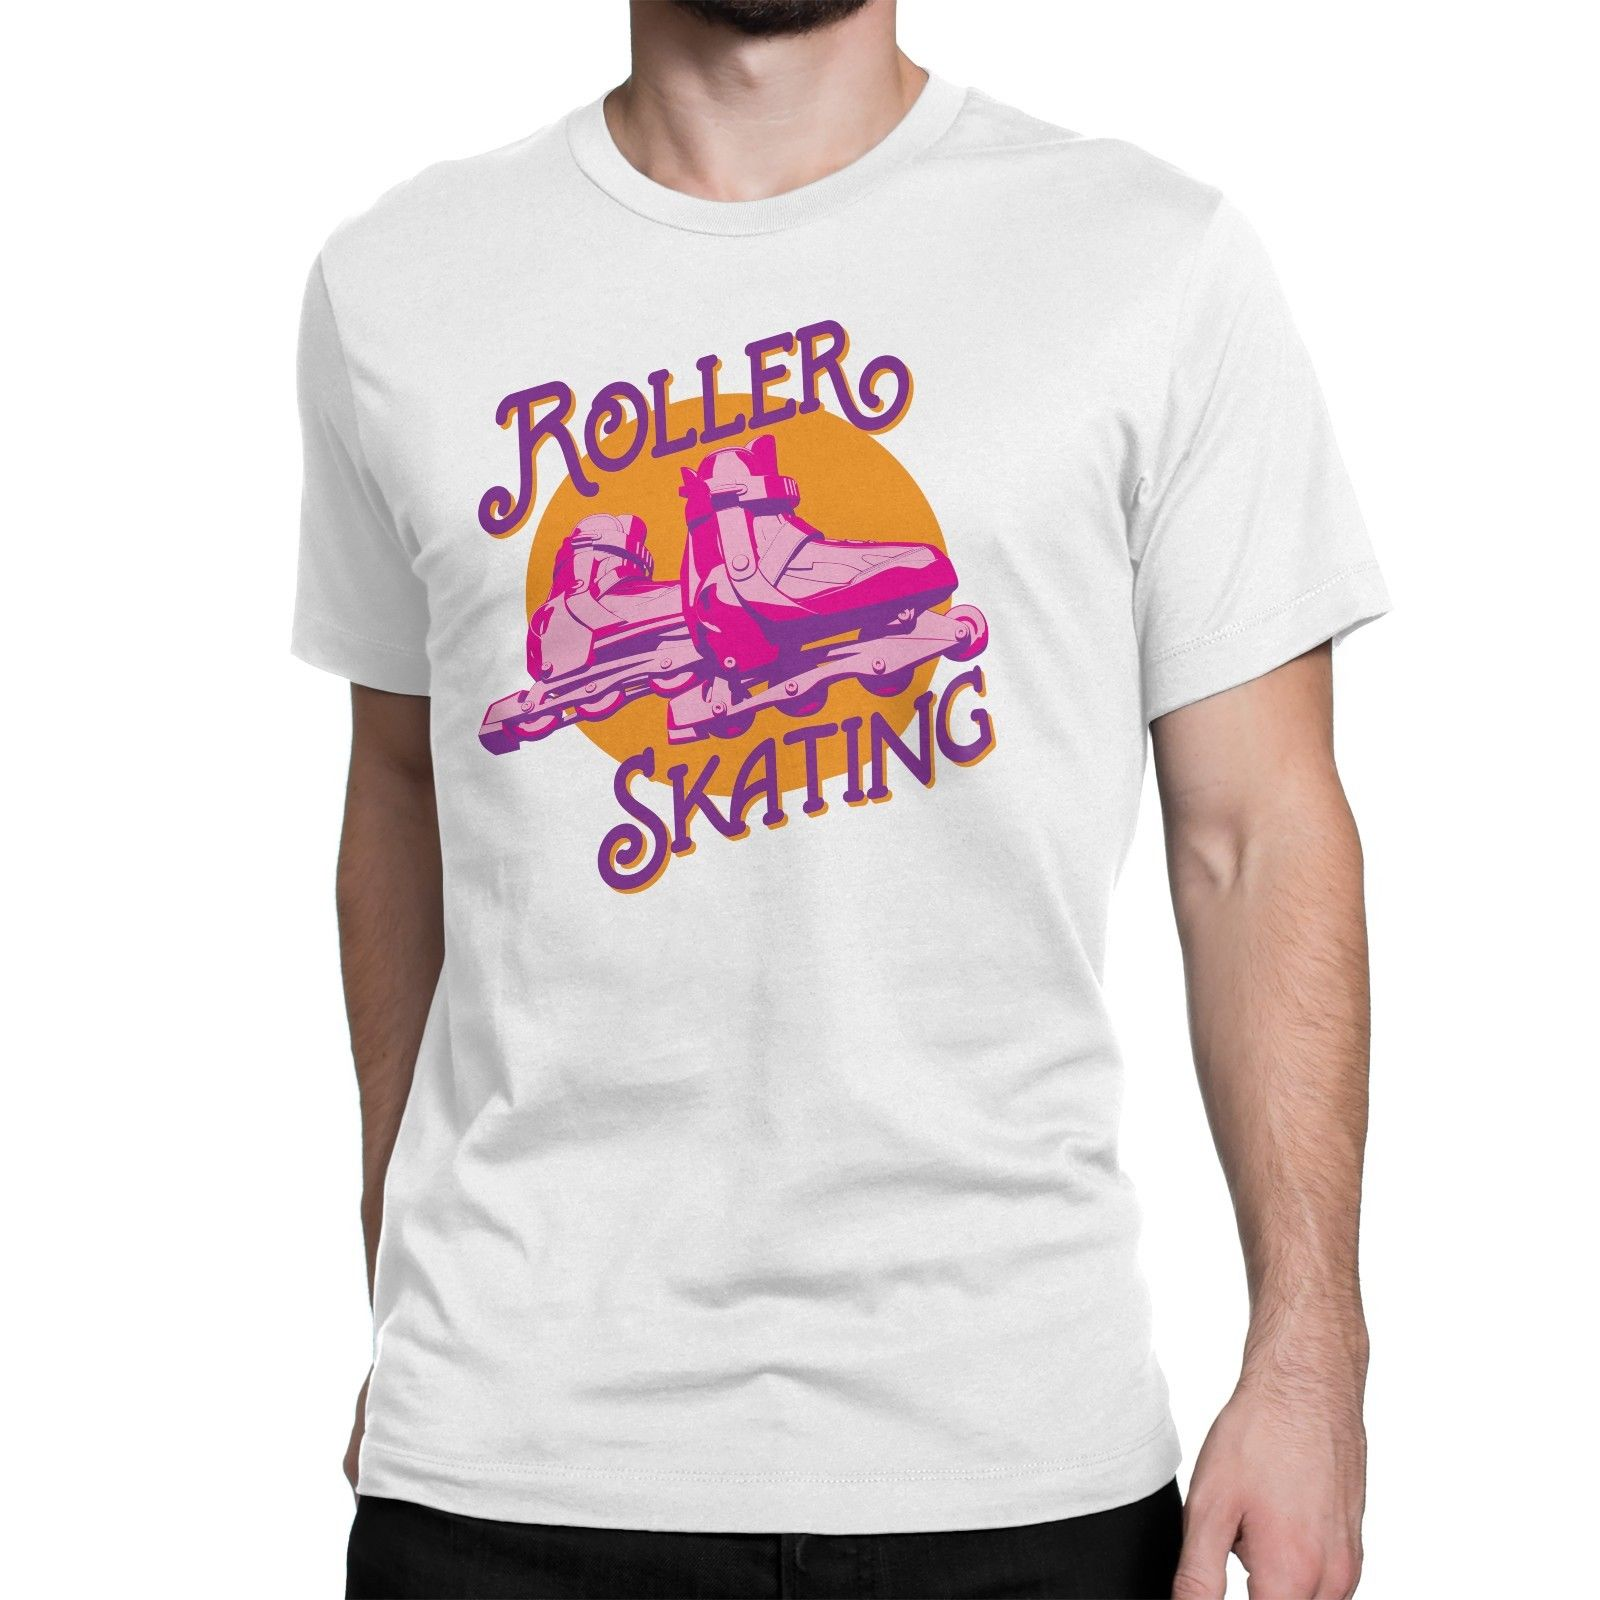 New Roller Derby 80s Skate Retro Sported Men T-Shirts Ideal Gift O-Neck Tops Tee Shirts